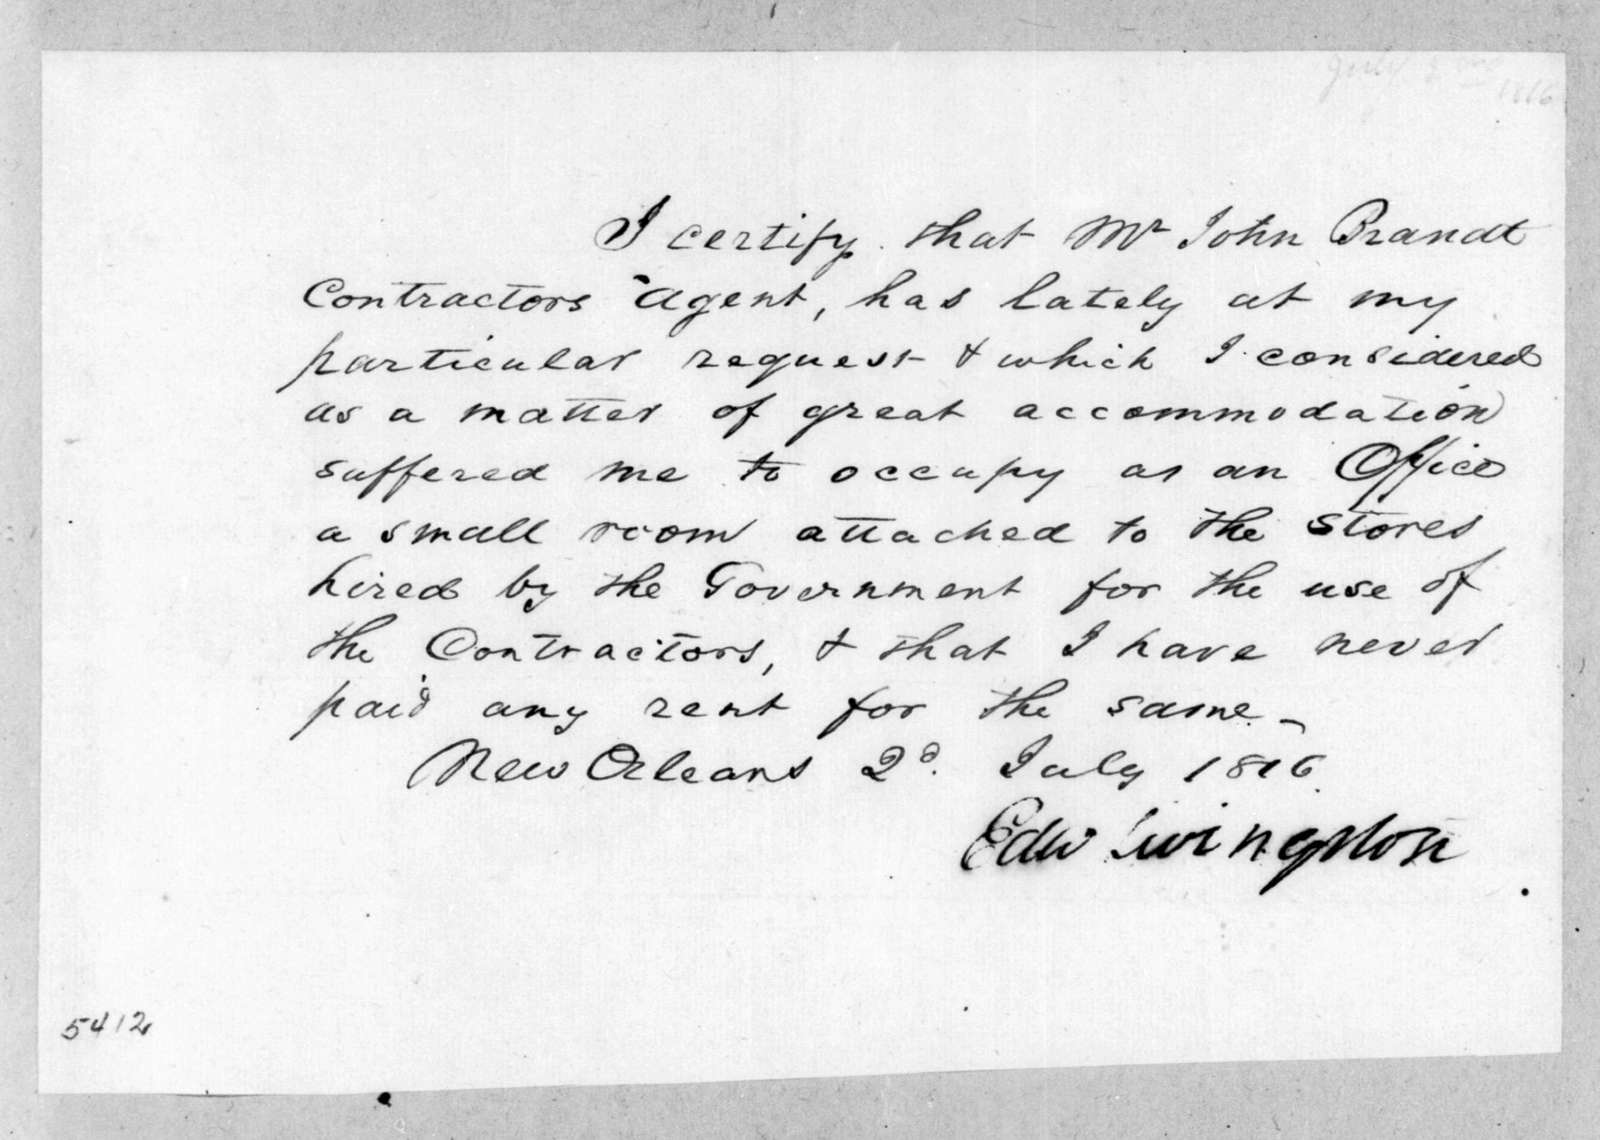 Edward Livingston to John Brandt, July 2, 1816